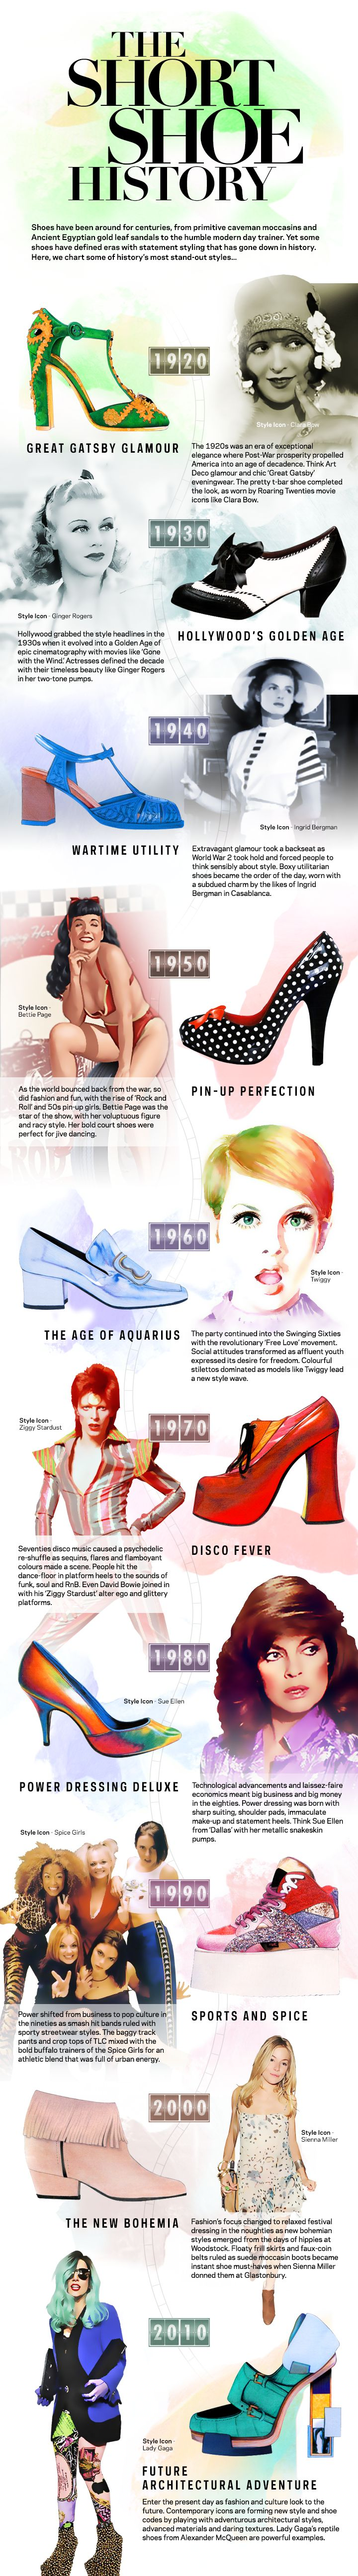 The Short Shoe History